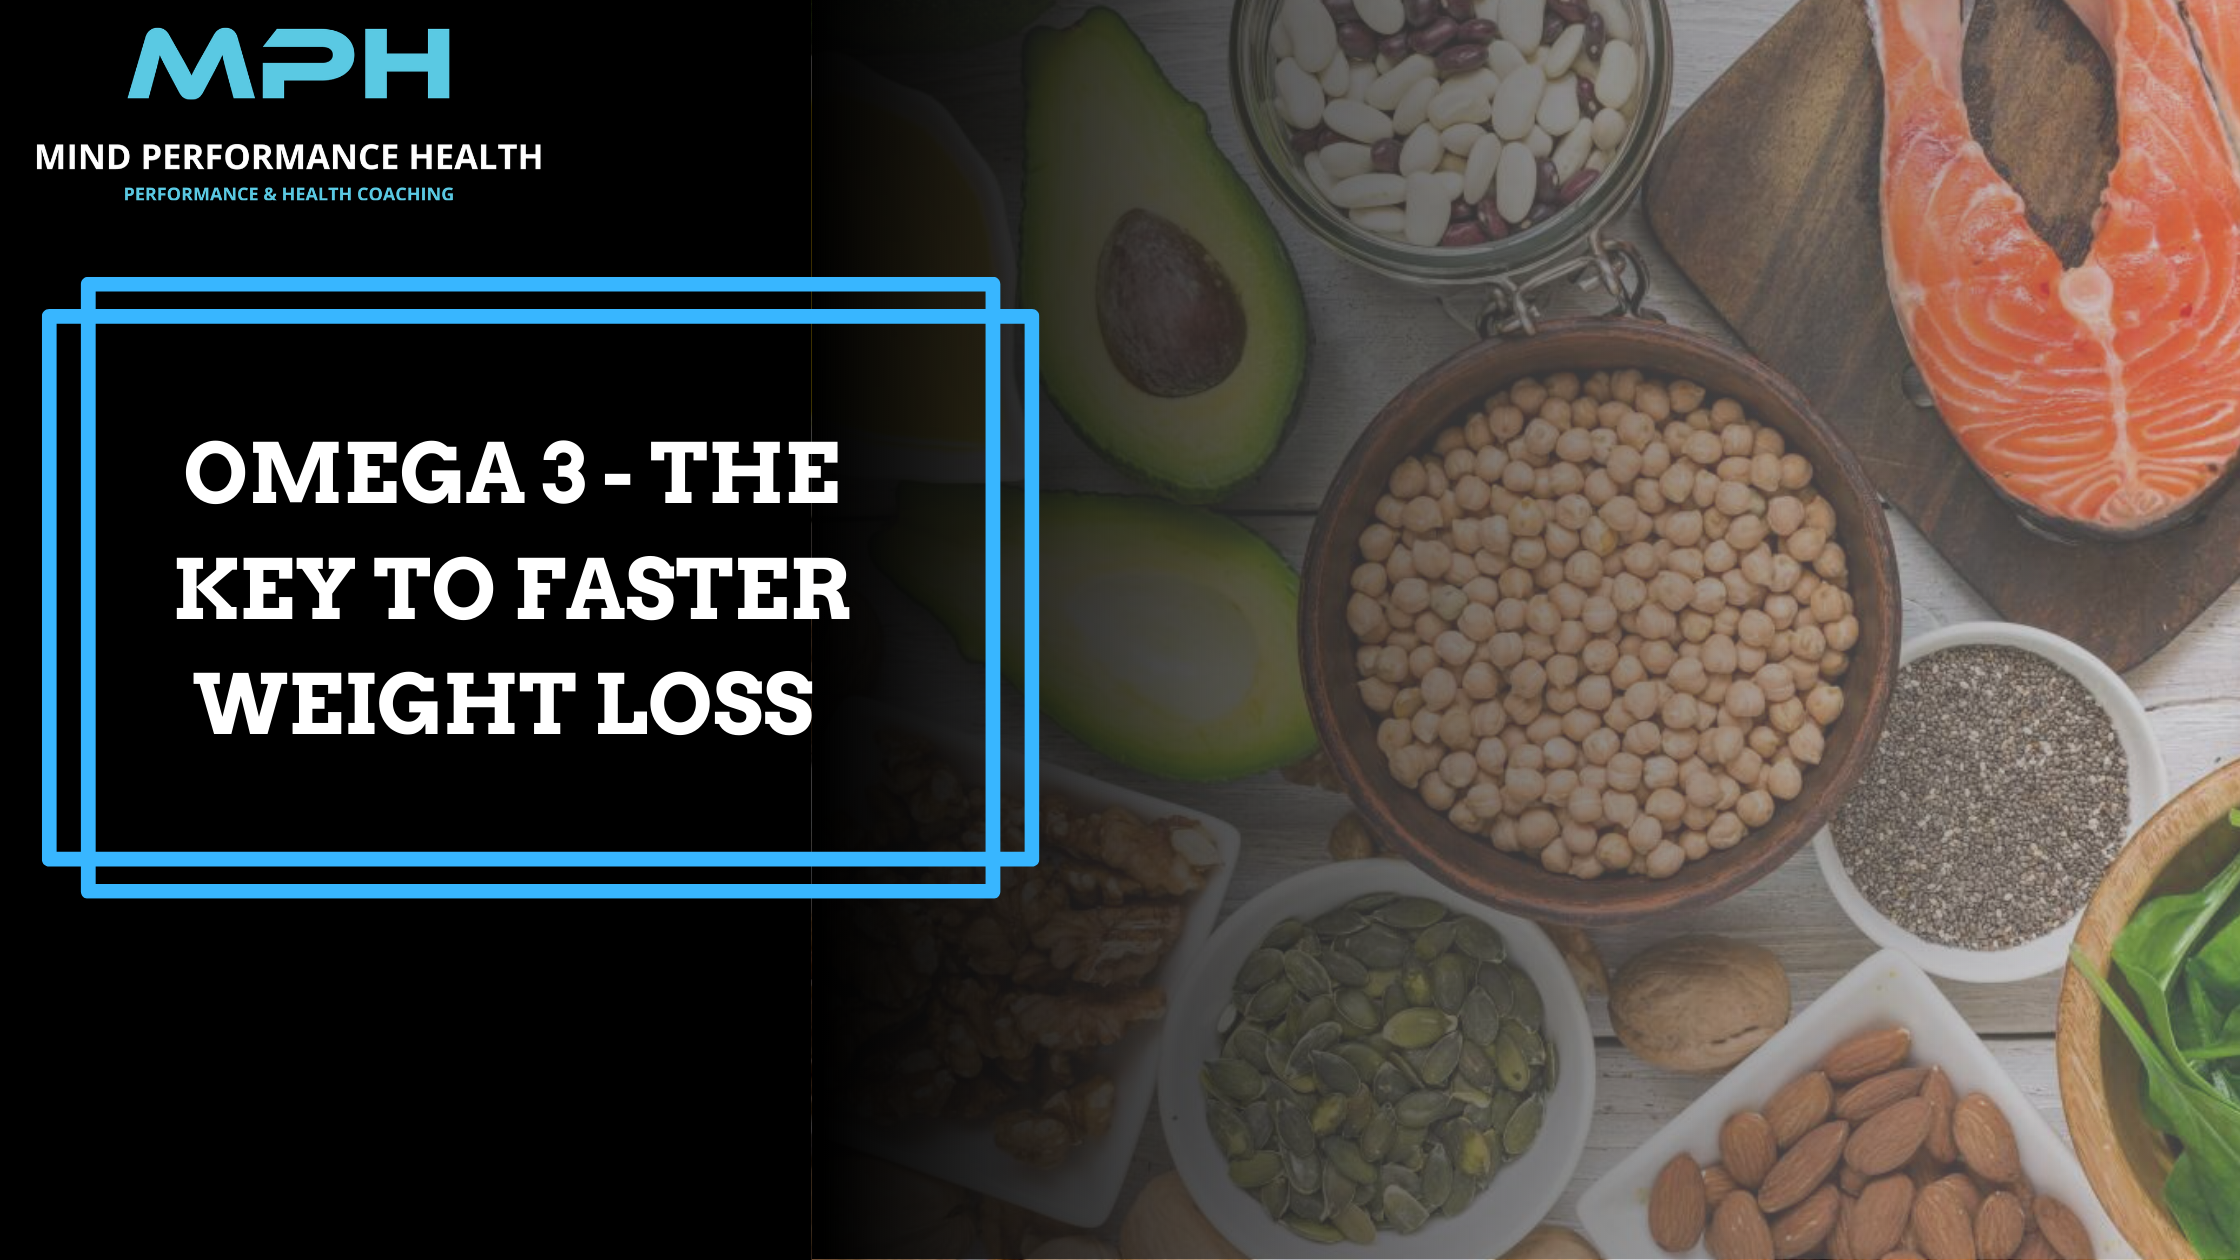 Omega 3 - The Key To Fast Track Weight Loss